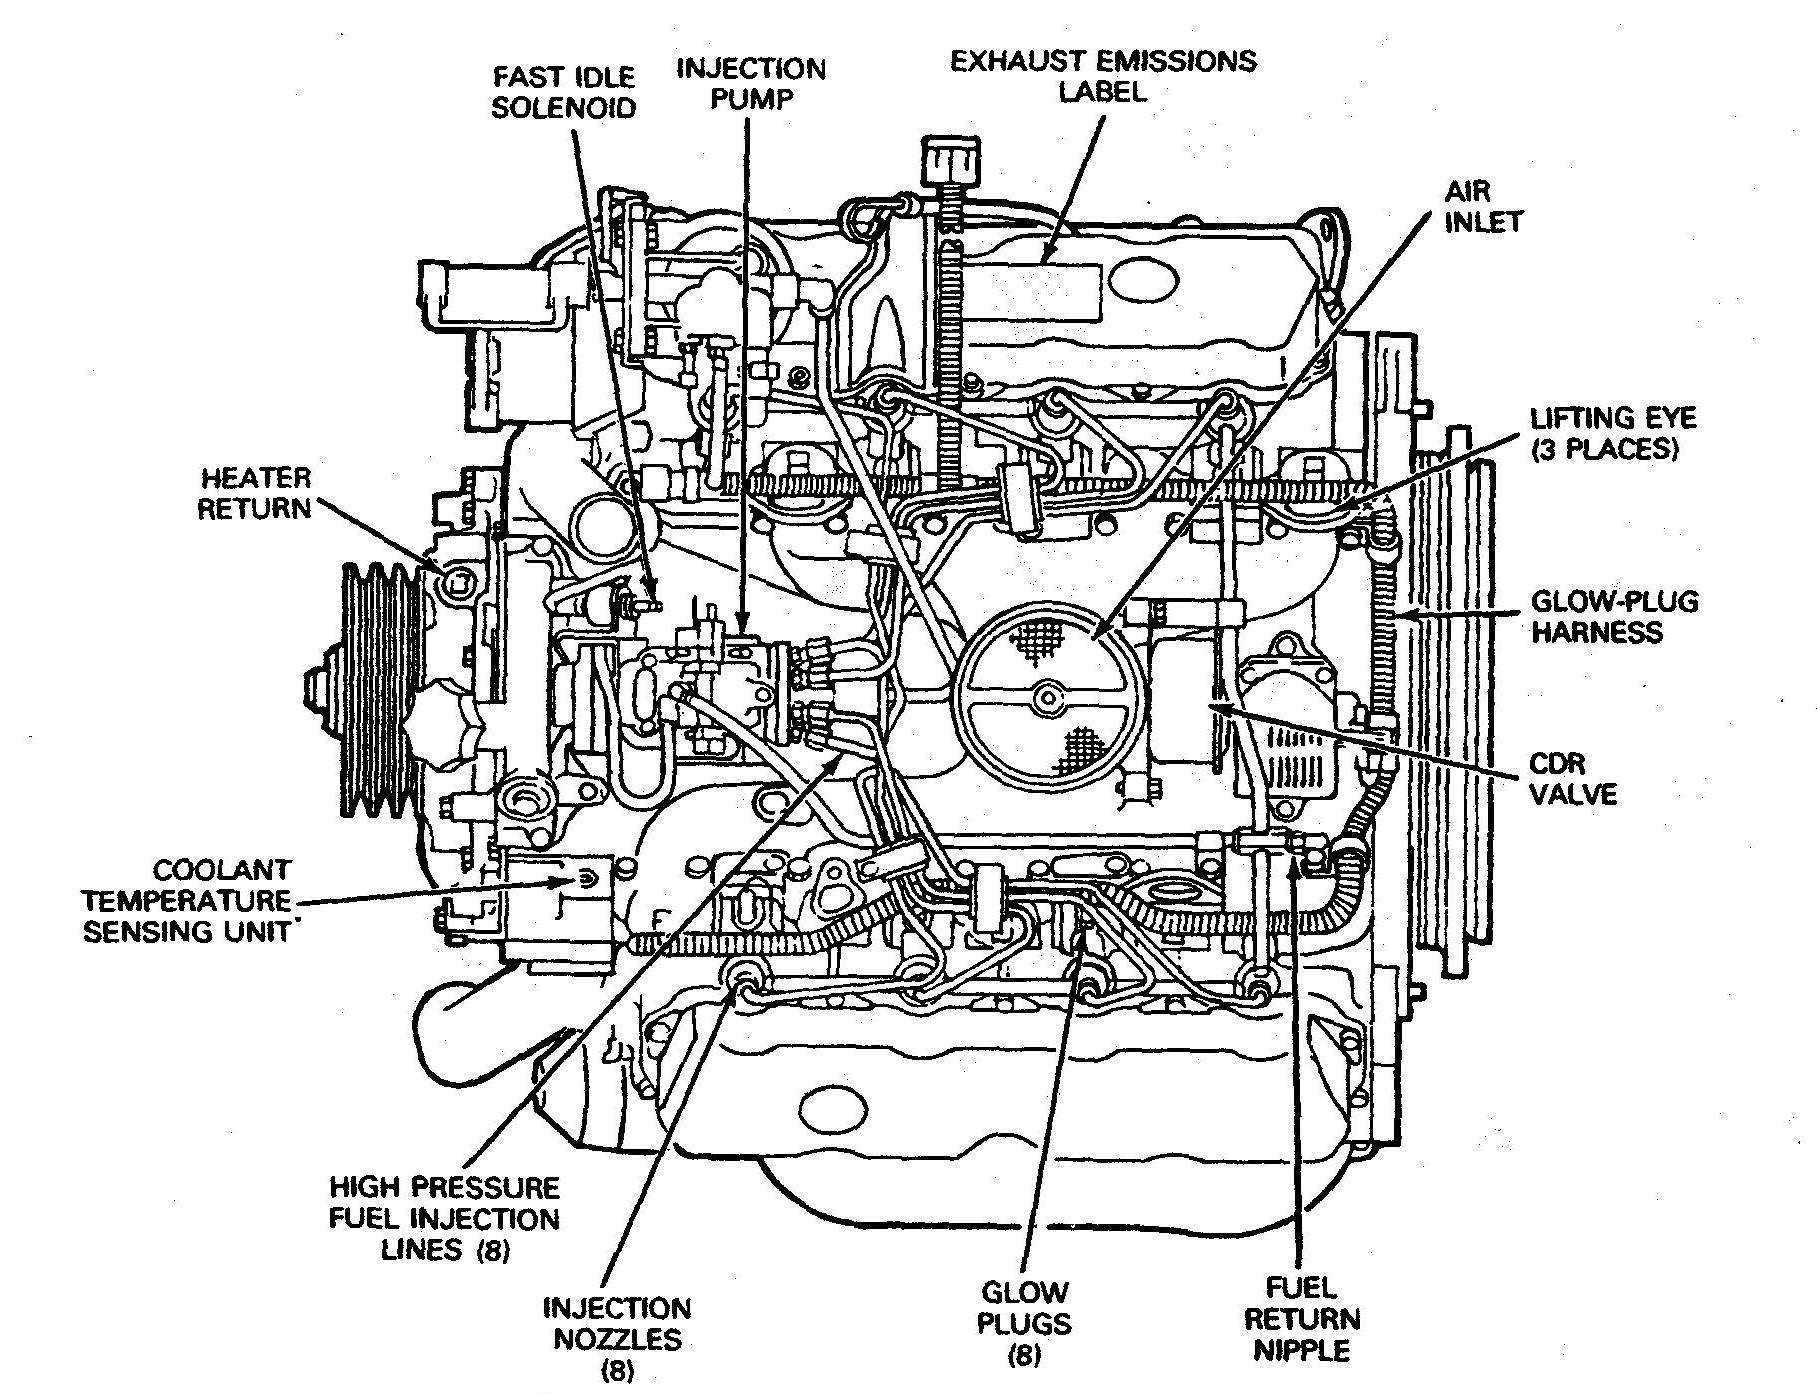 302 V8 Engine Diagram Trusted Wiring Diagrams 196 Spal Fans Search For U2022 Rh Idijournal Com 1994 Ford 351w